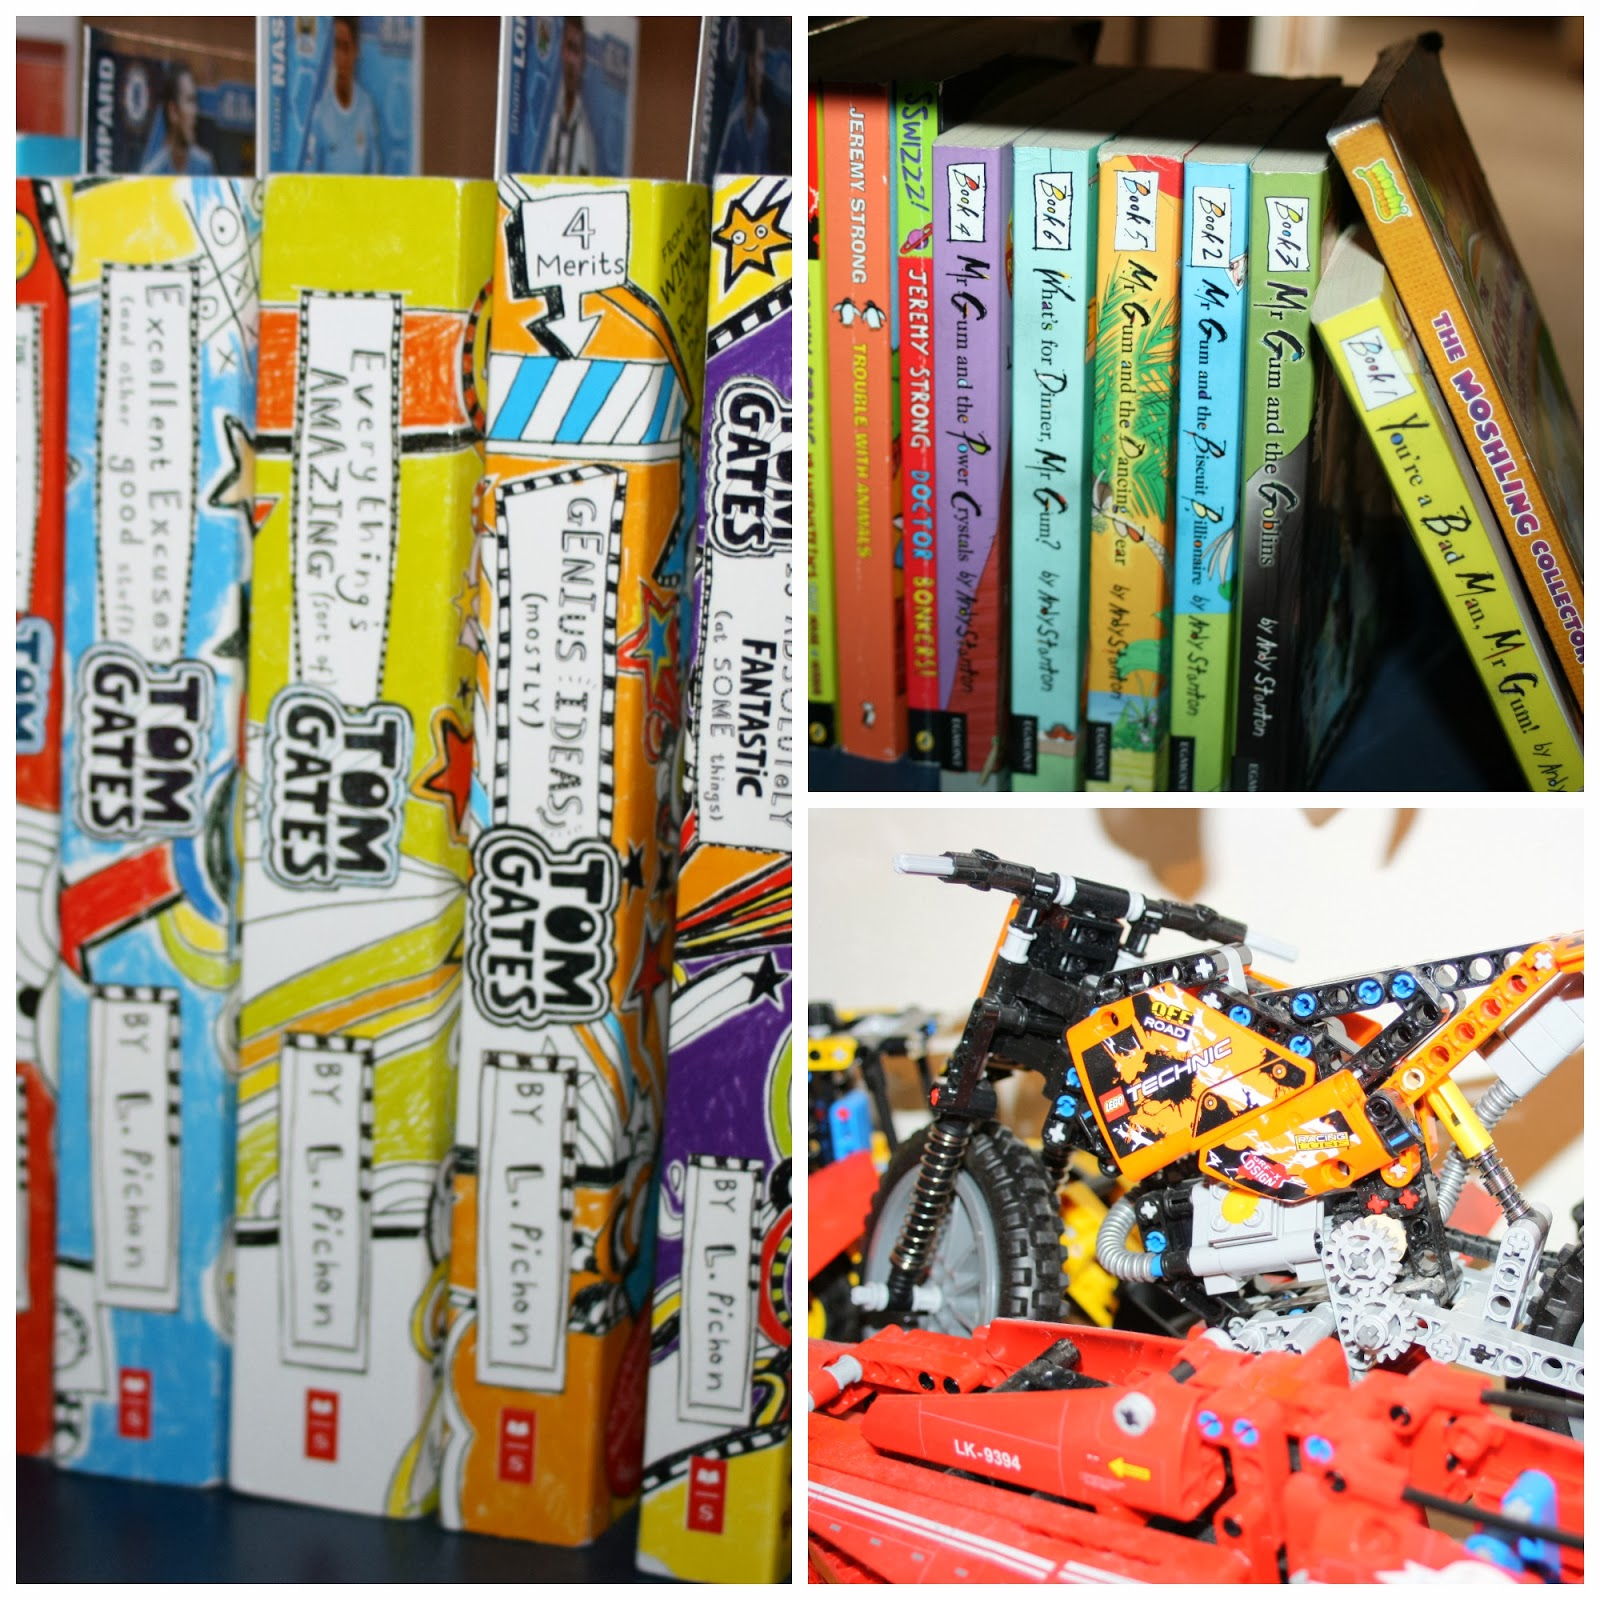 Bedroom-books-Lego-son-new-house